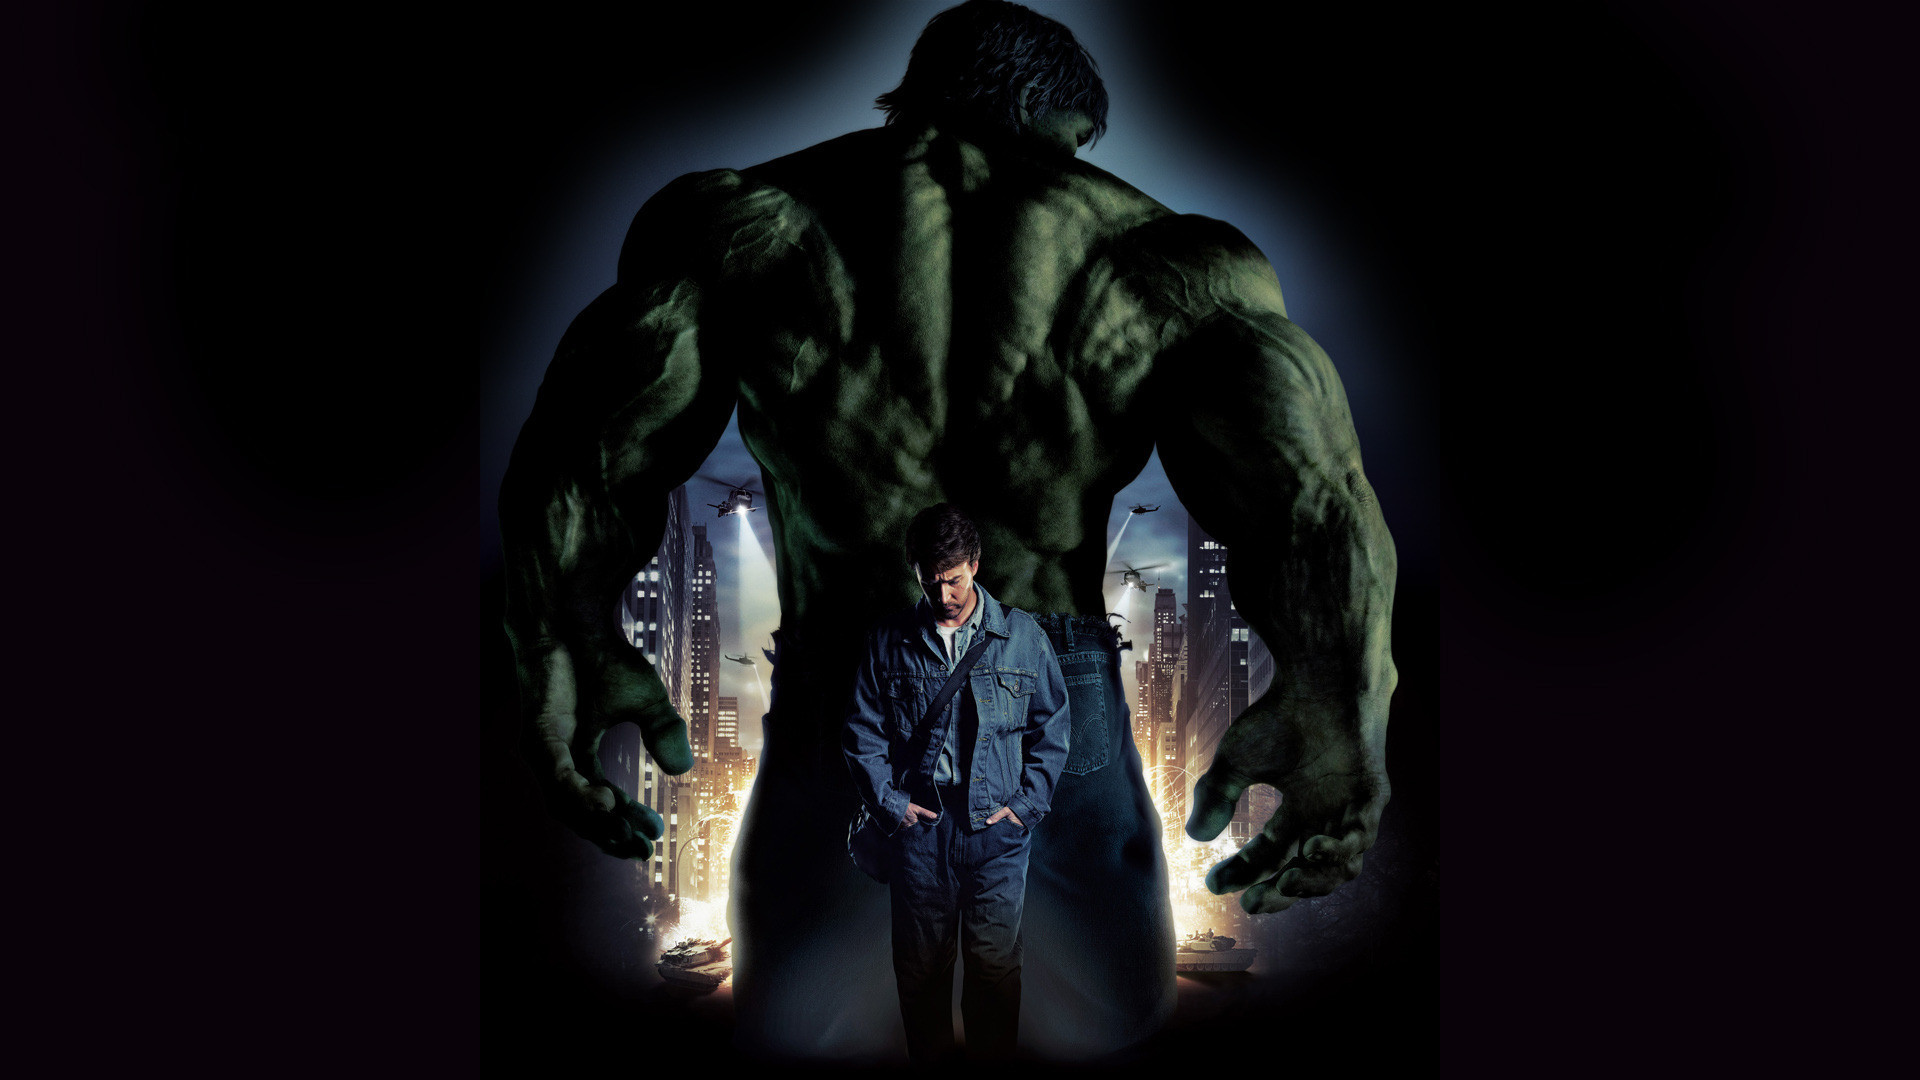 Fantastic Wallpapers 28 Magnificent Incredible Hulk Backgrounds 1920x1080